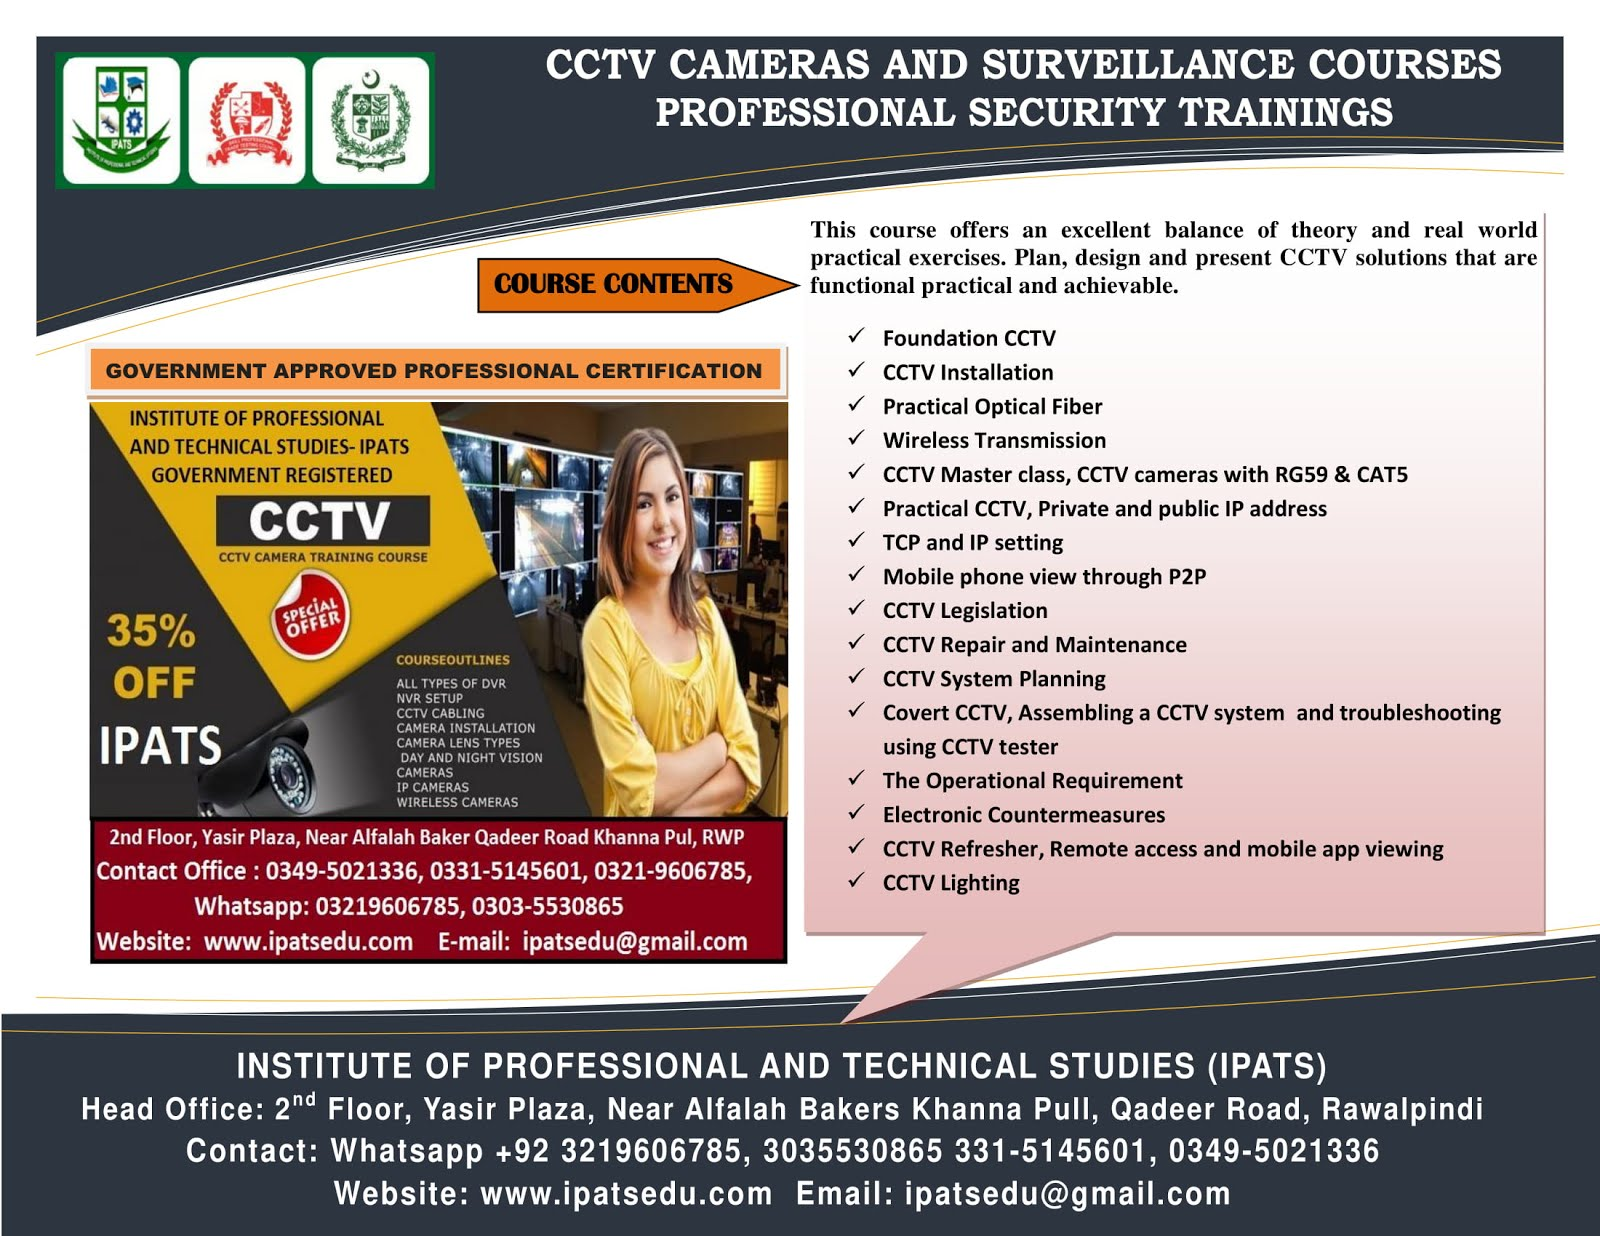 CCTV camera course in islamabad rawalpindi chakwal jhelum gujrat 3035530865